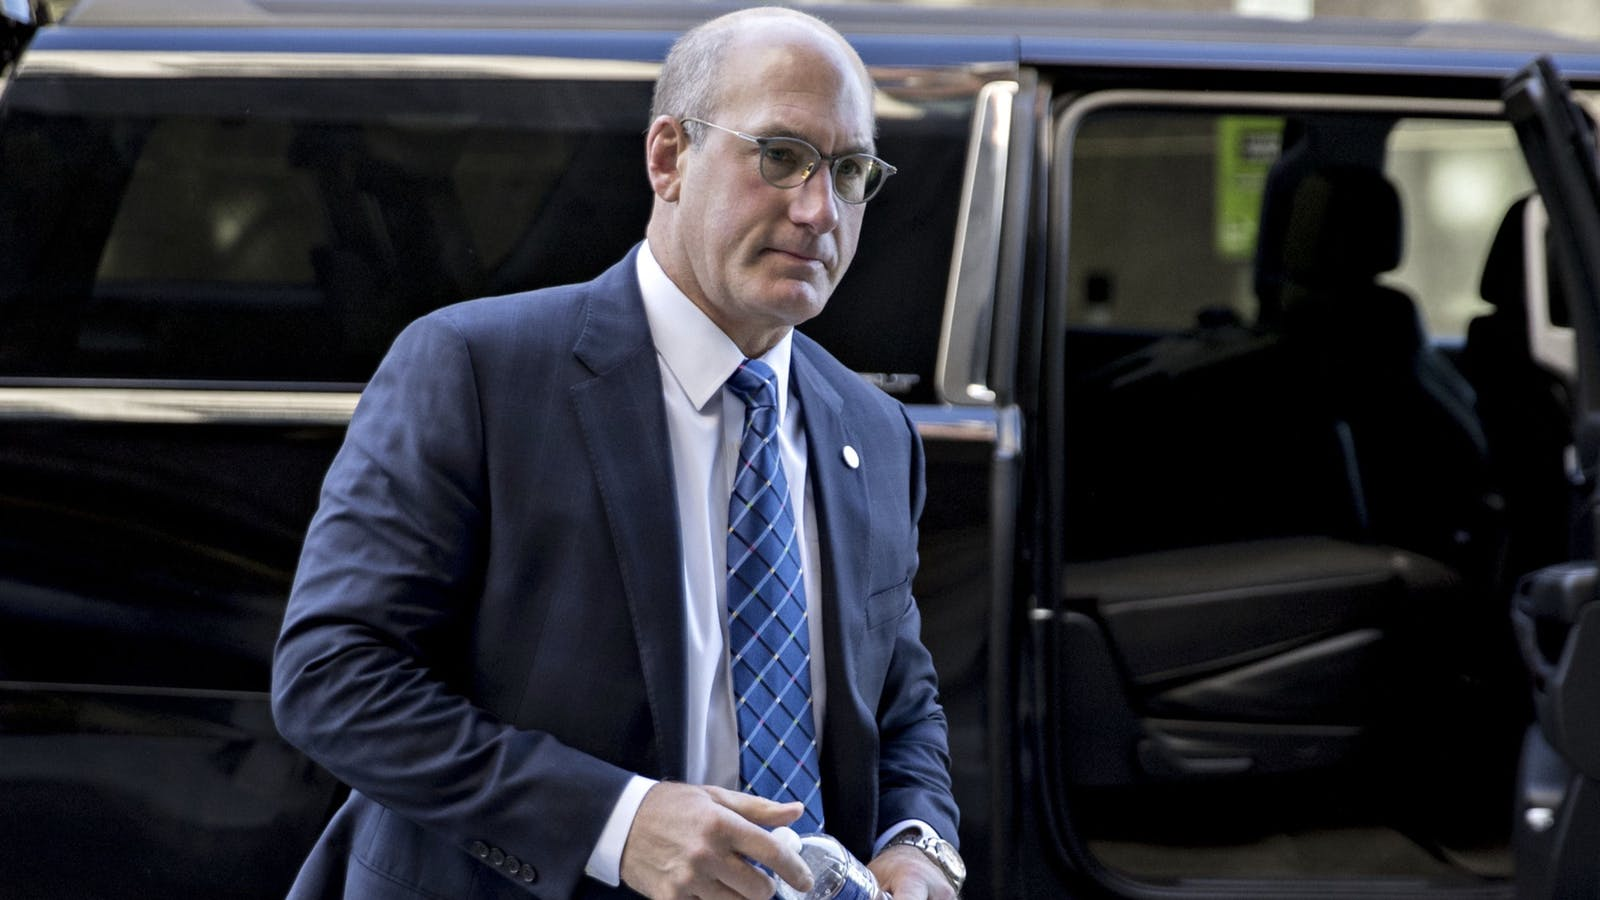 AT&T CEO John Stankey. Photo by Bloomberg.